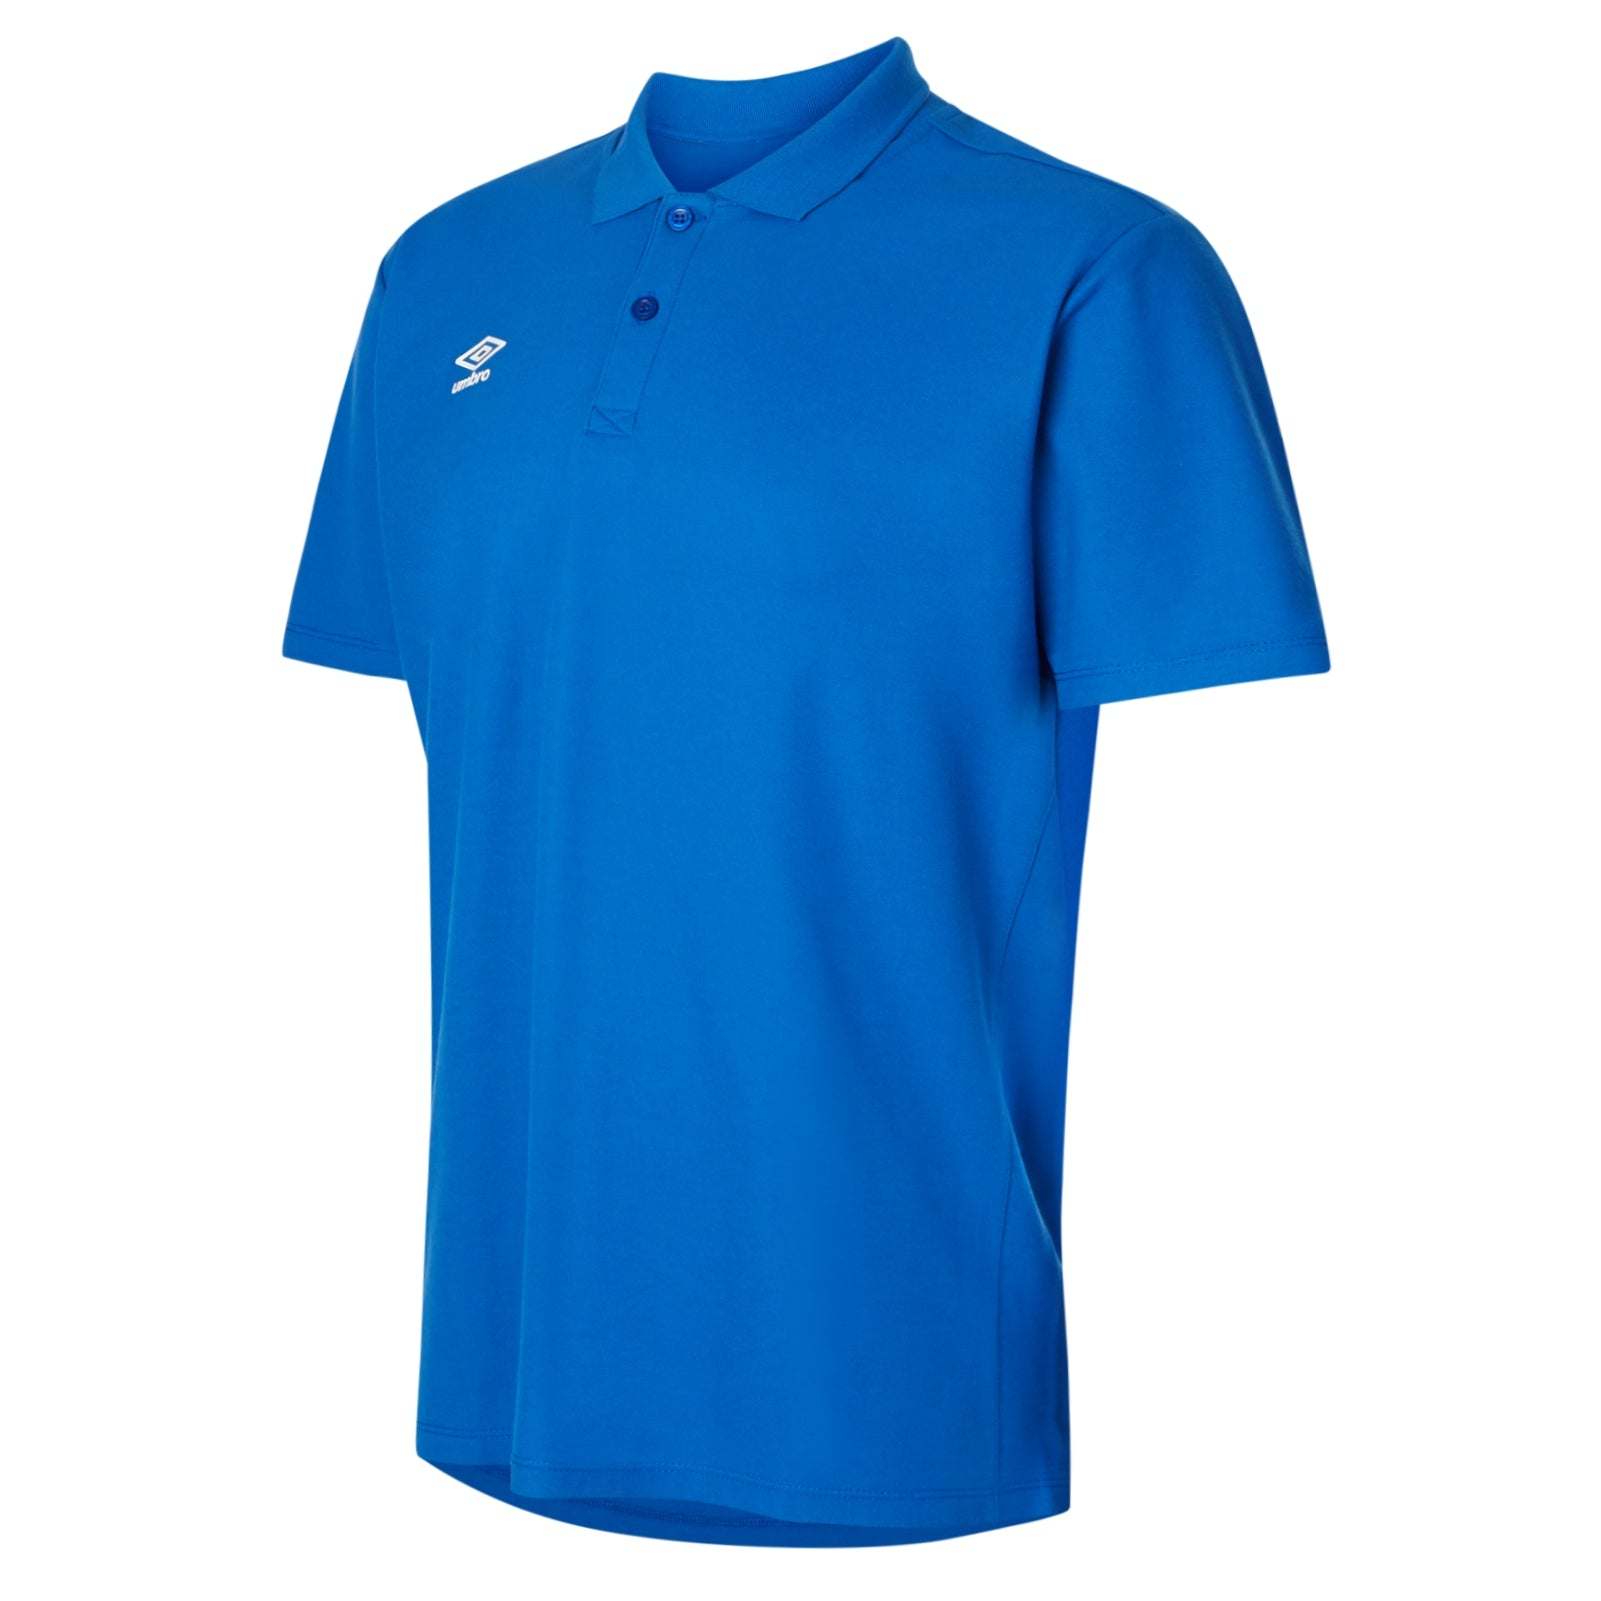 Umbro Club Essential Polo in TW royal with white Umbro Diamond logo on right chest